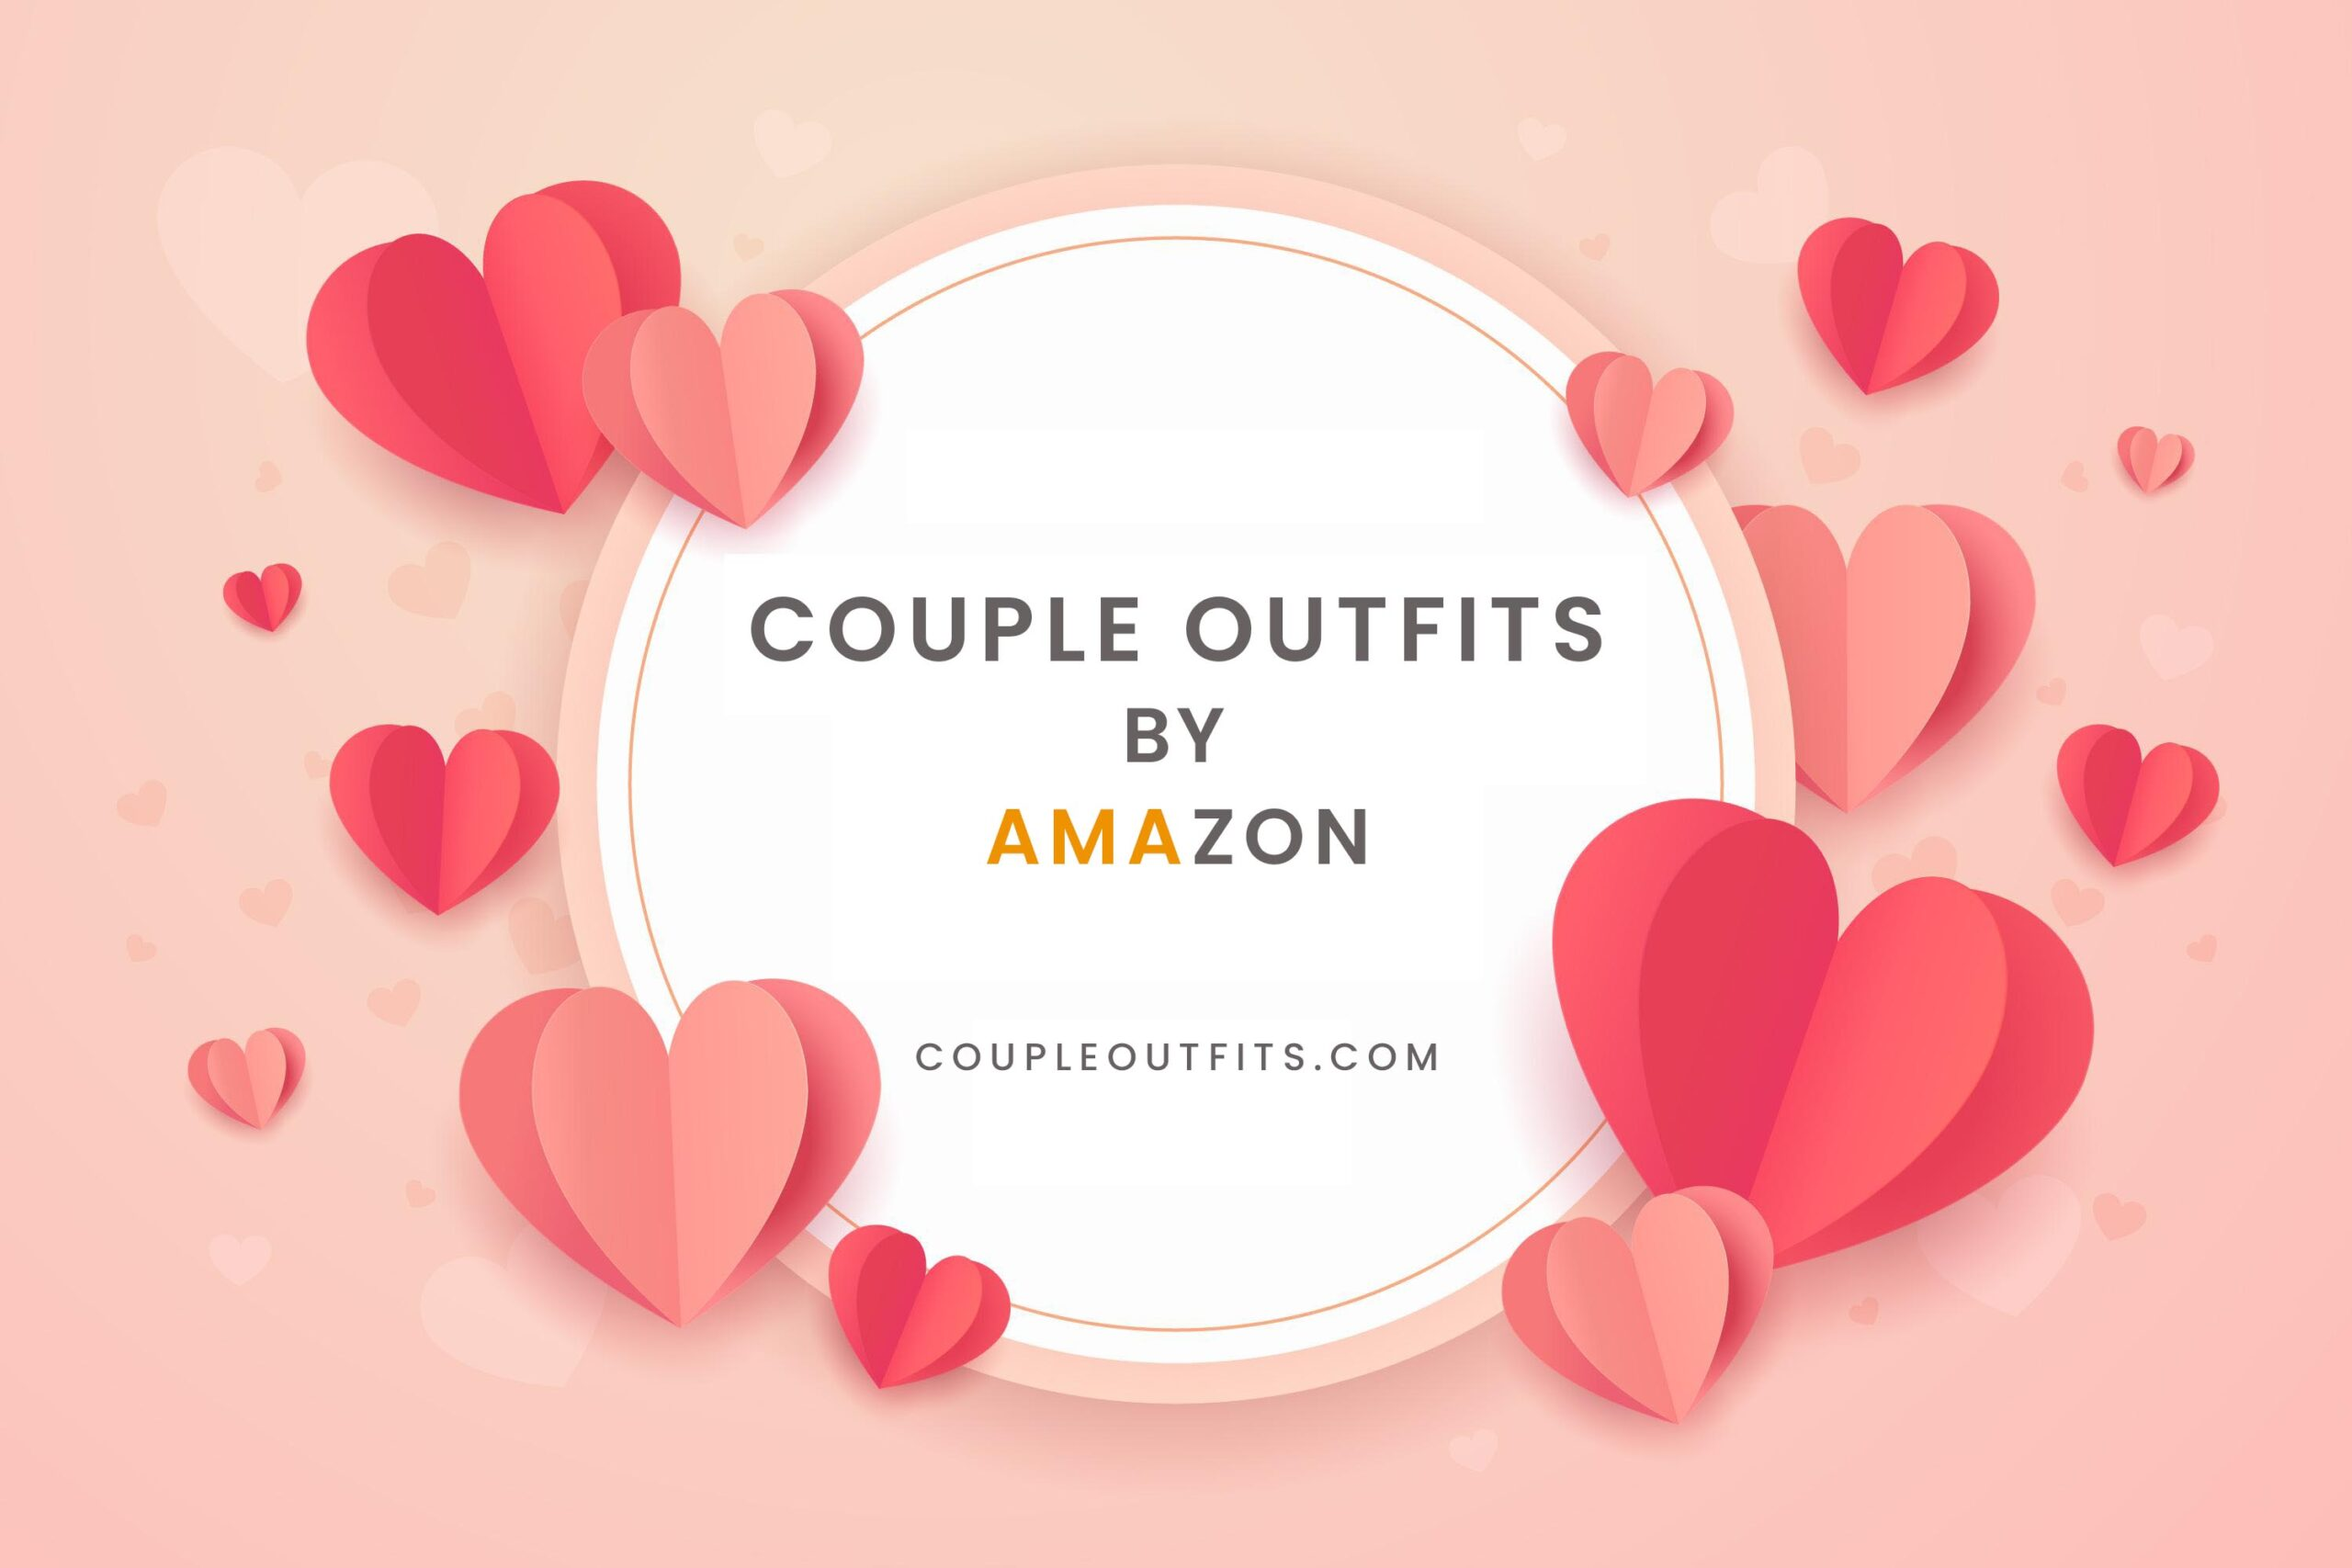 couple outfits amazon banner